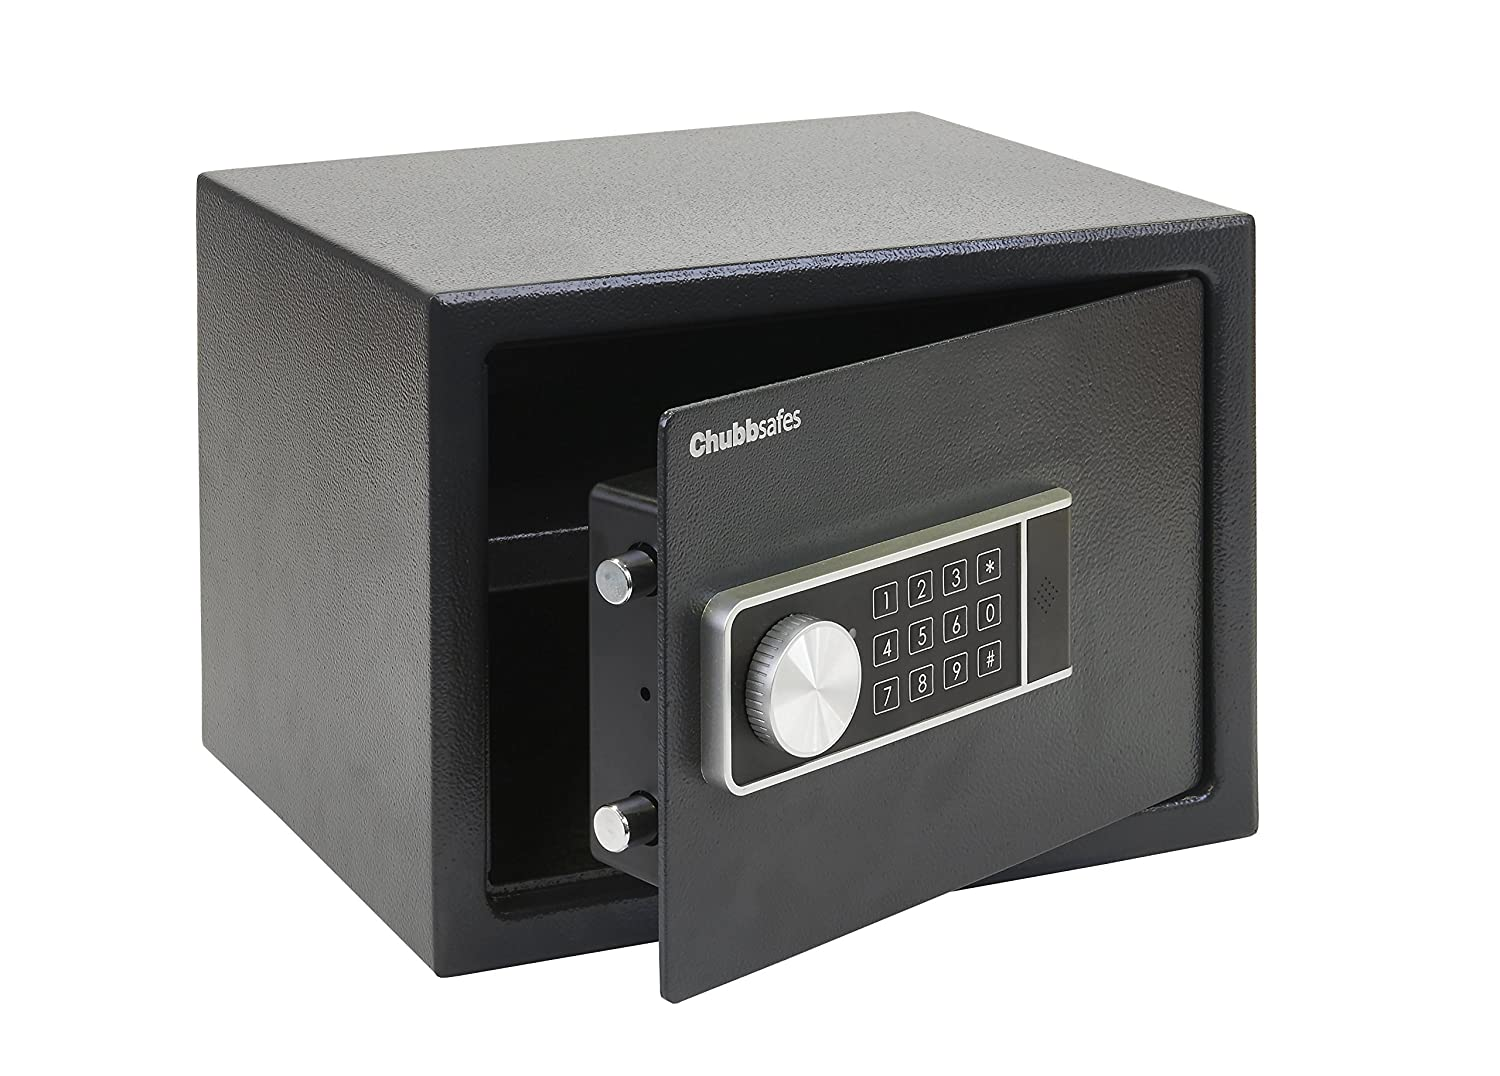 Chubbsafes pcsairx0015xe11 N Air 15E Security Safe with Electronic Lock 17L PCSAIRX0015XE11N